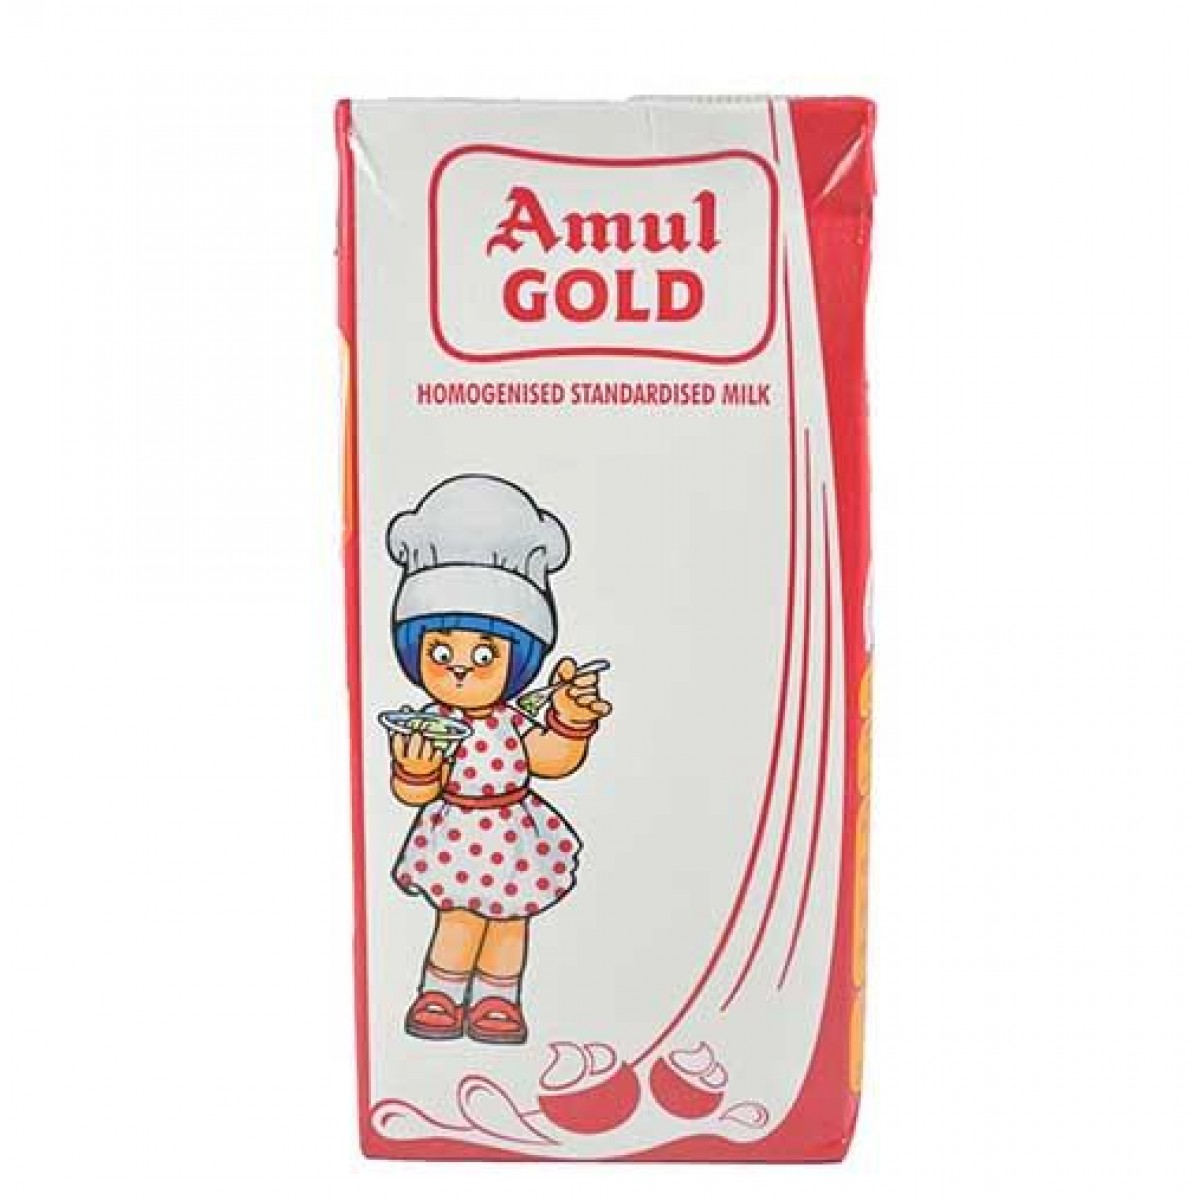 Amul Gold 500 Ml Tetra Pack Express 1 Hr Grocery Delivery